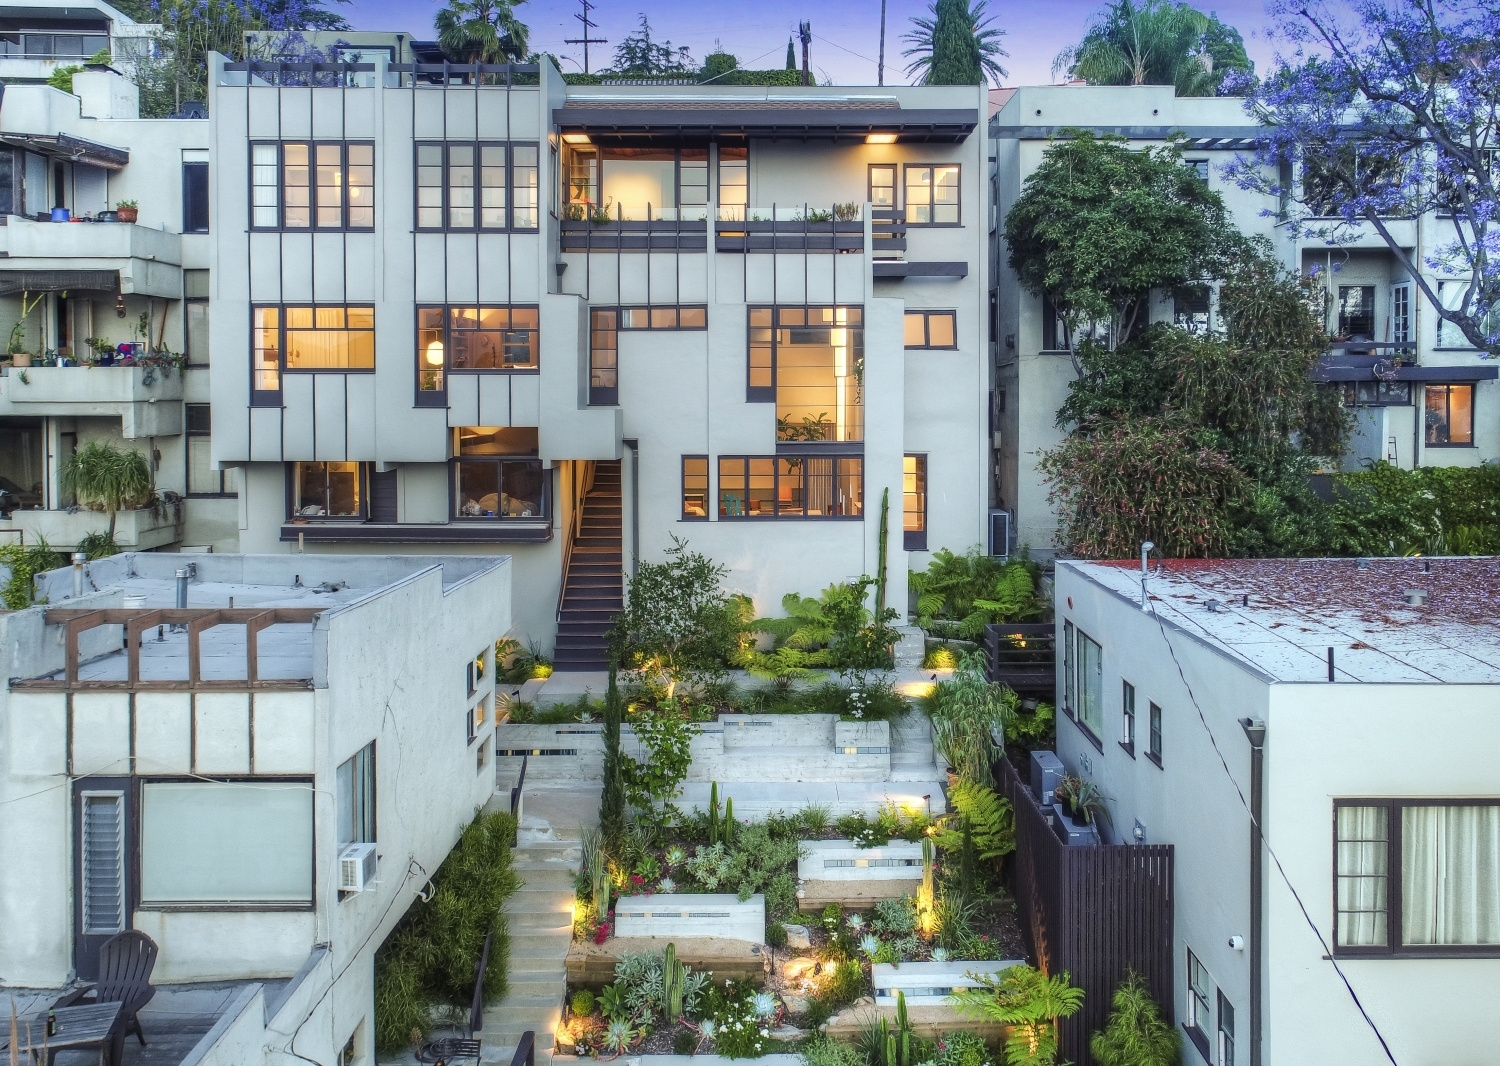 LA Stories: A Rudolph Schindler Apartment in Silver Lake, Lovingly Restored (and Now Ready for Stays)